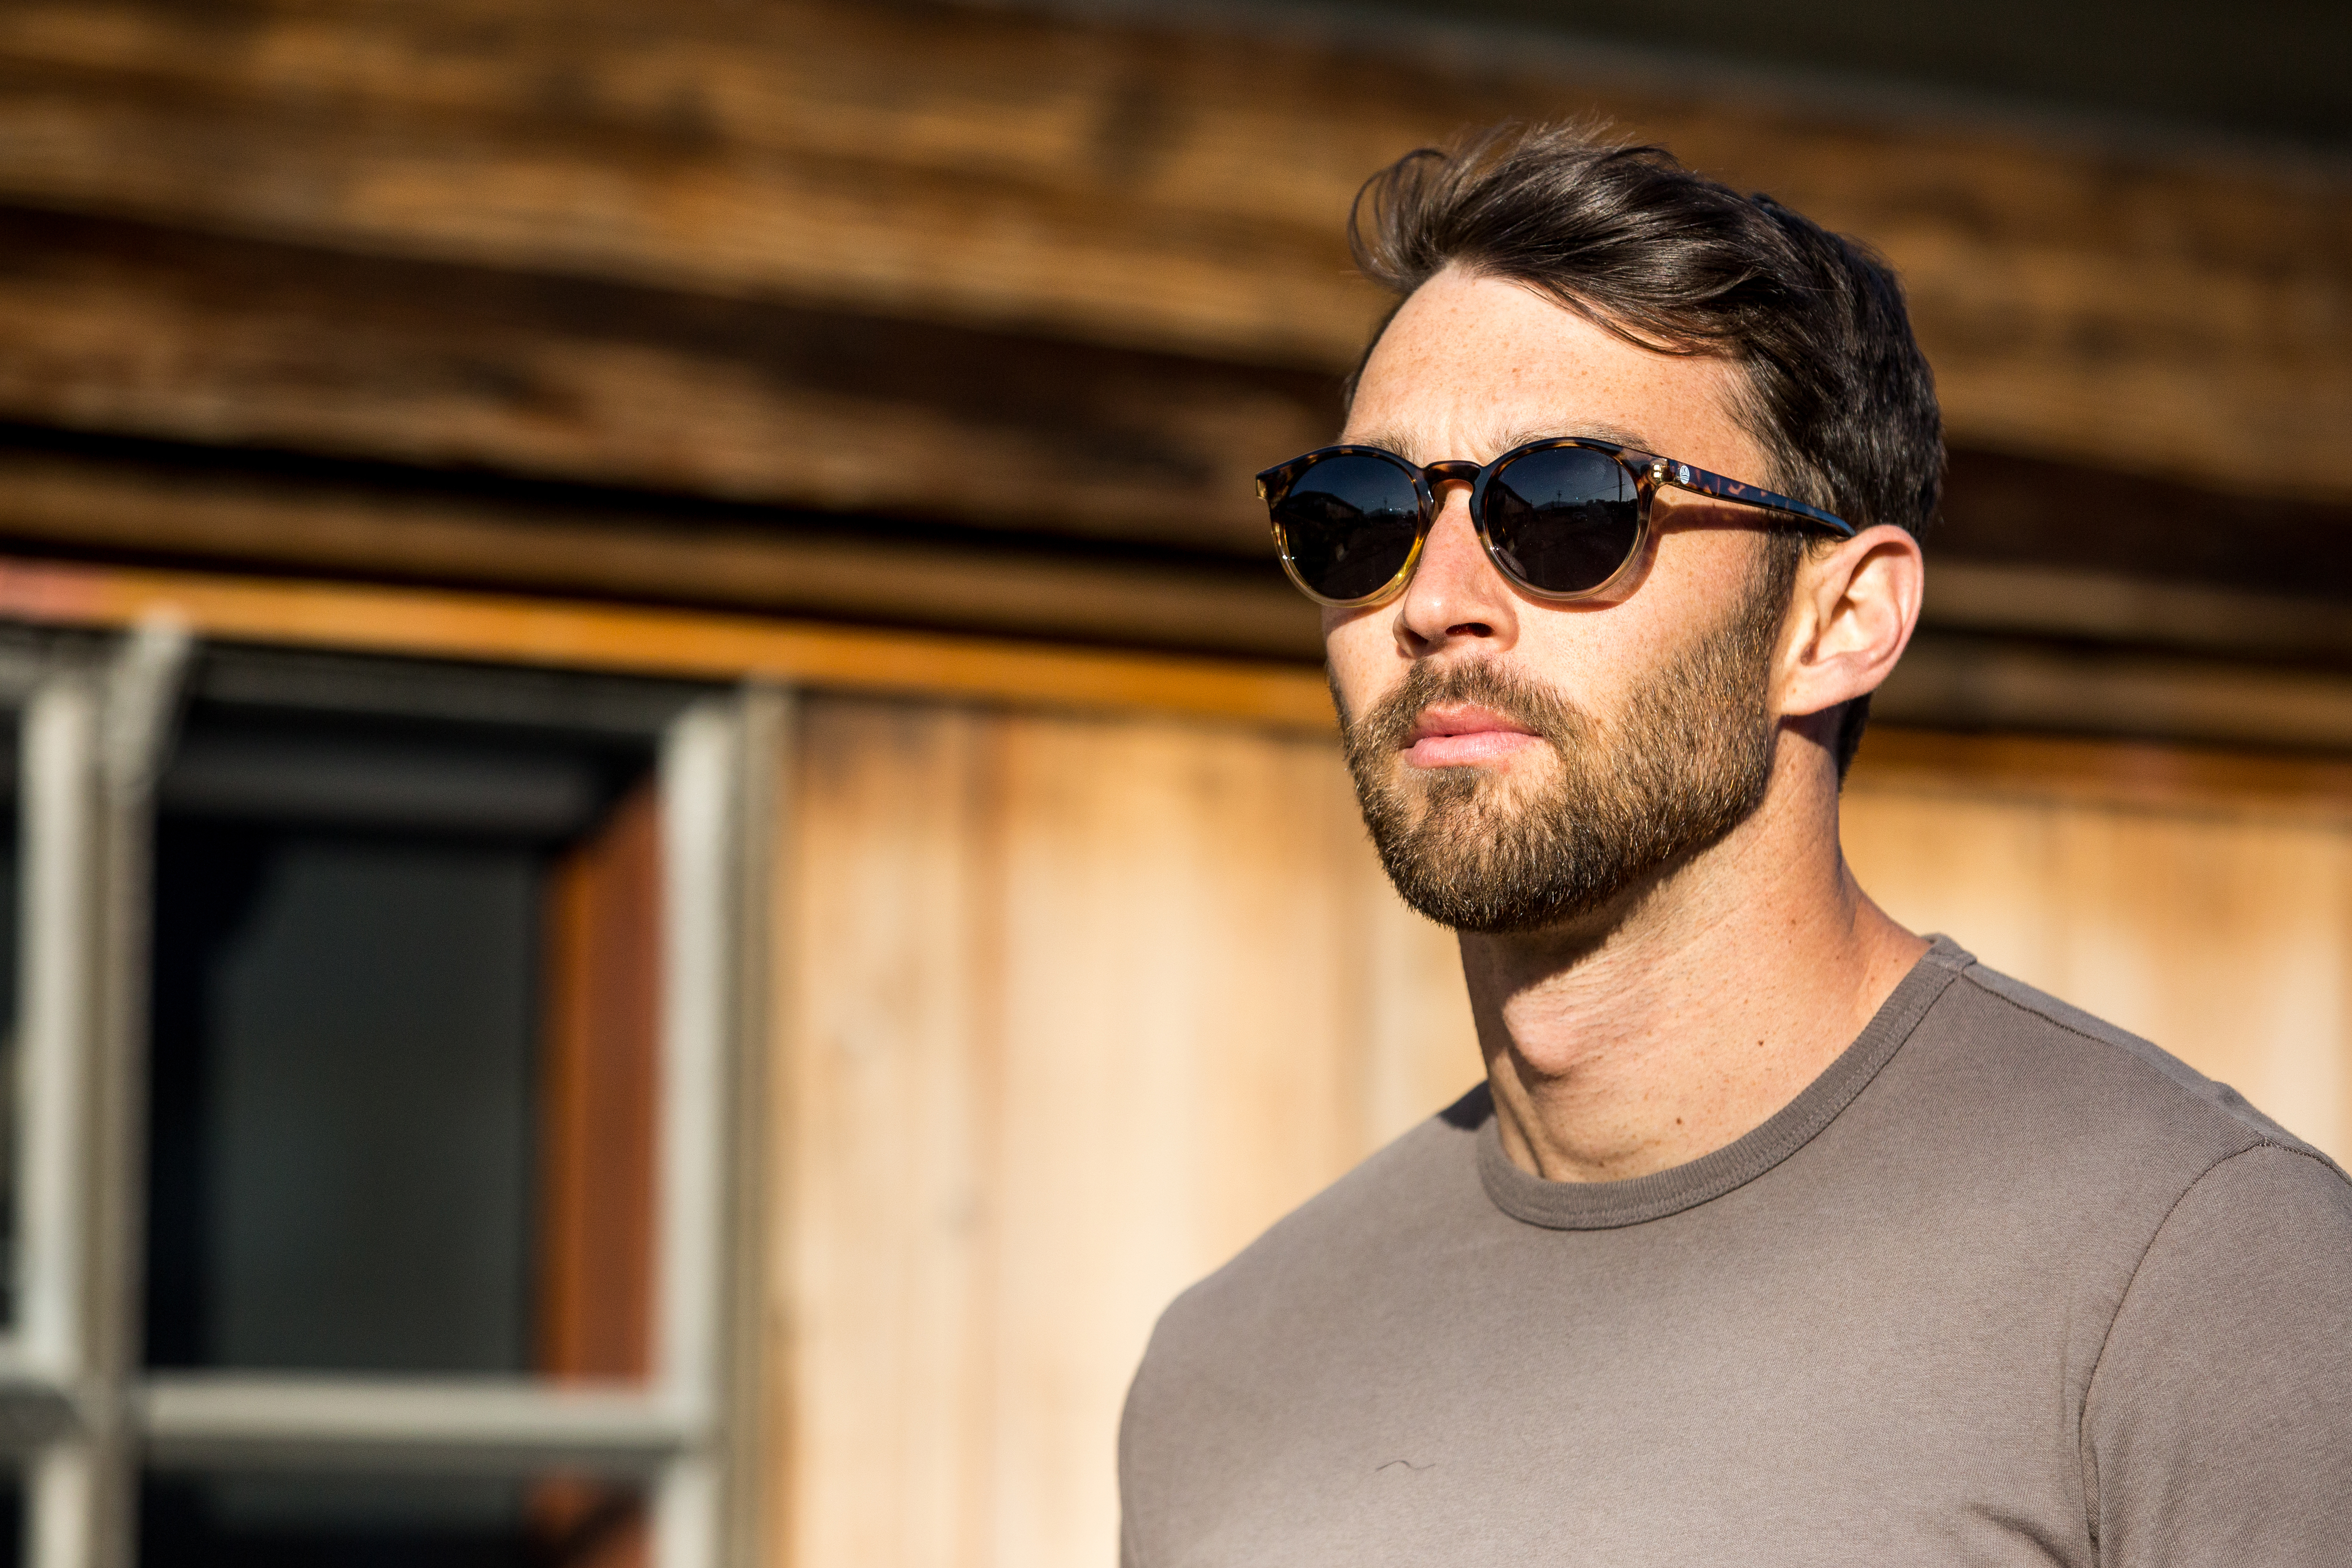 008540cc309 With its standard polarized lenses and lightweight frames